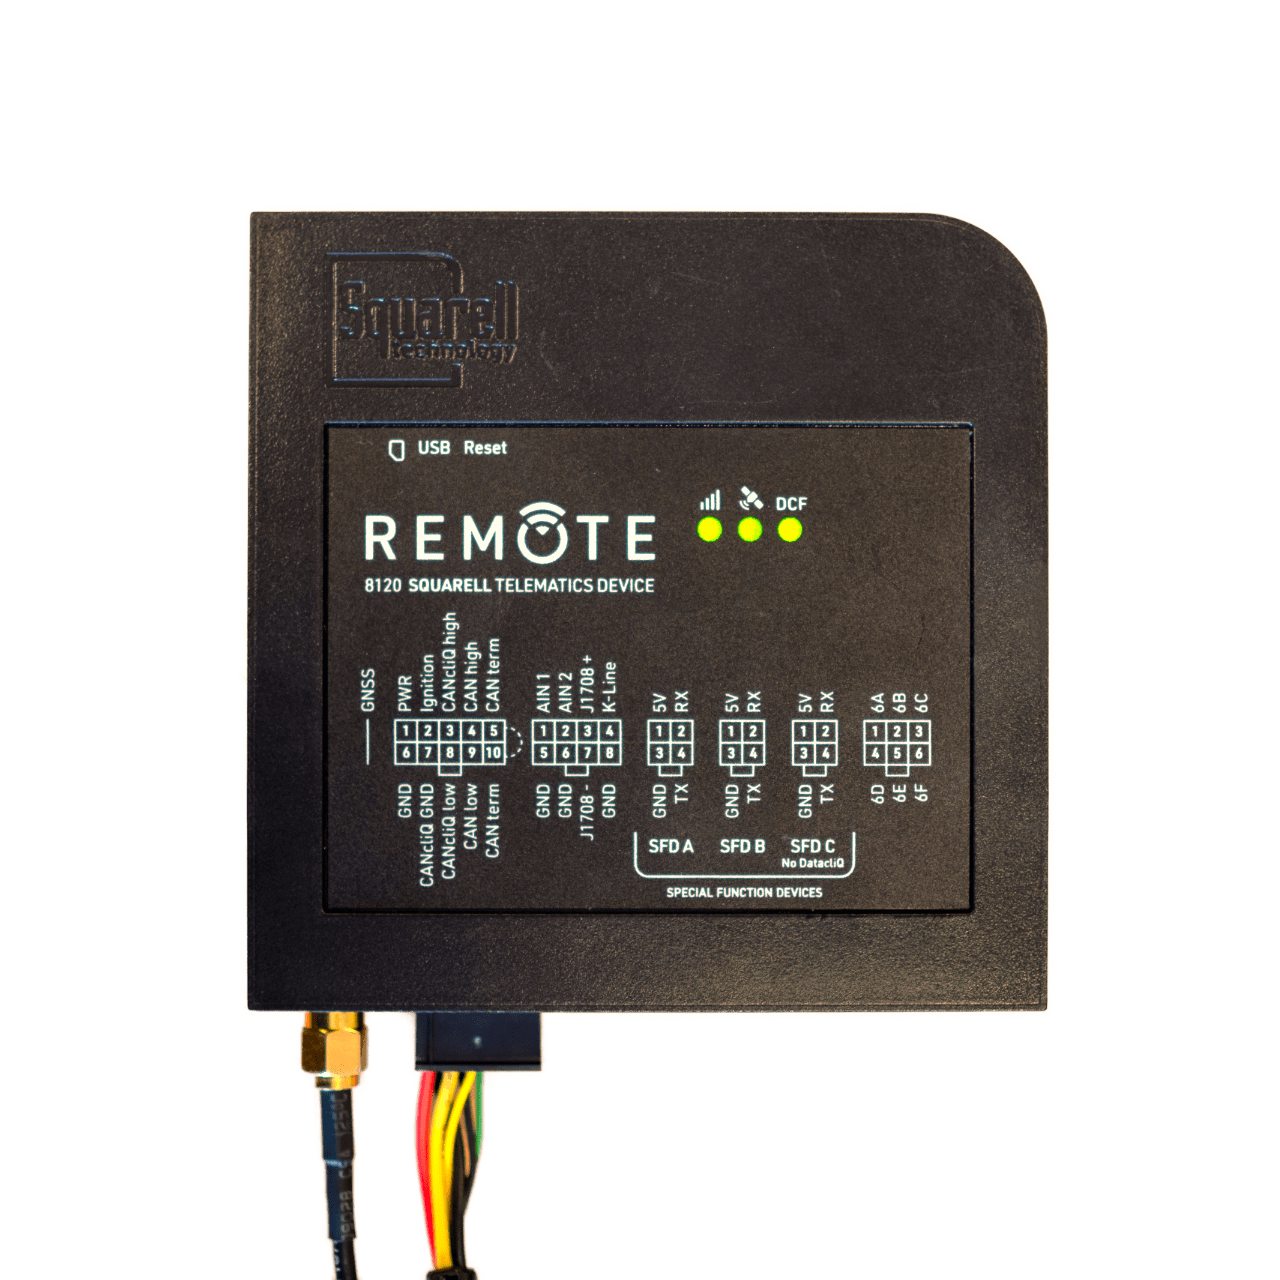 REMOTE cabled